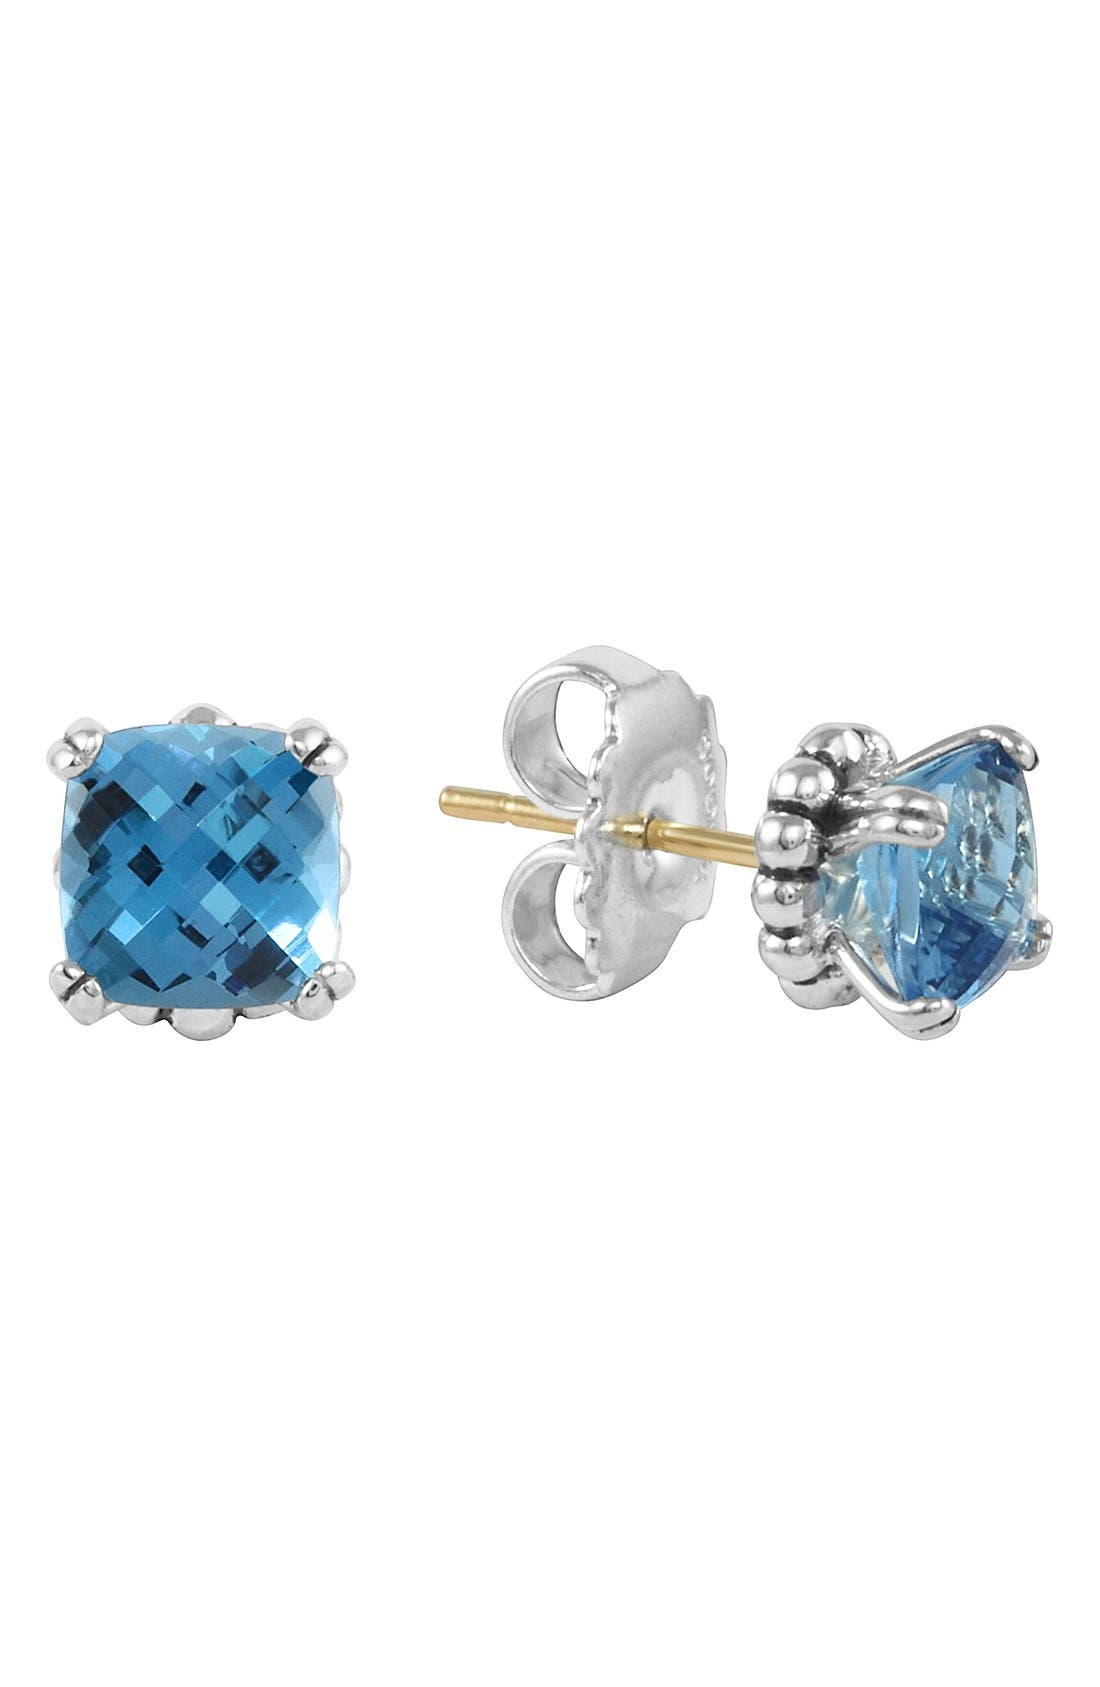 'Prism' Stud Earrings,                             Main thumbnail 1, color,                             SILVER/ BLUE TOPAZ